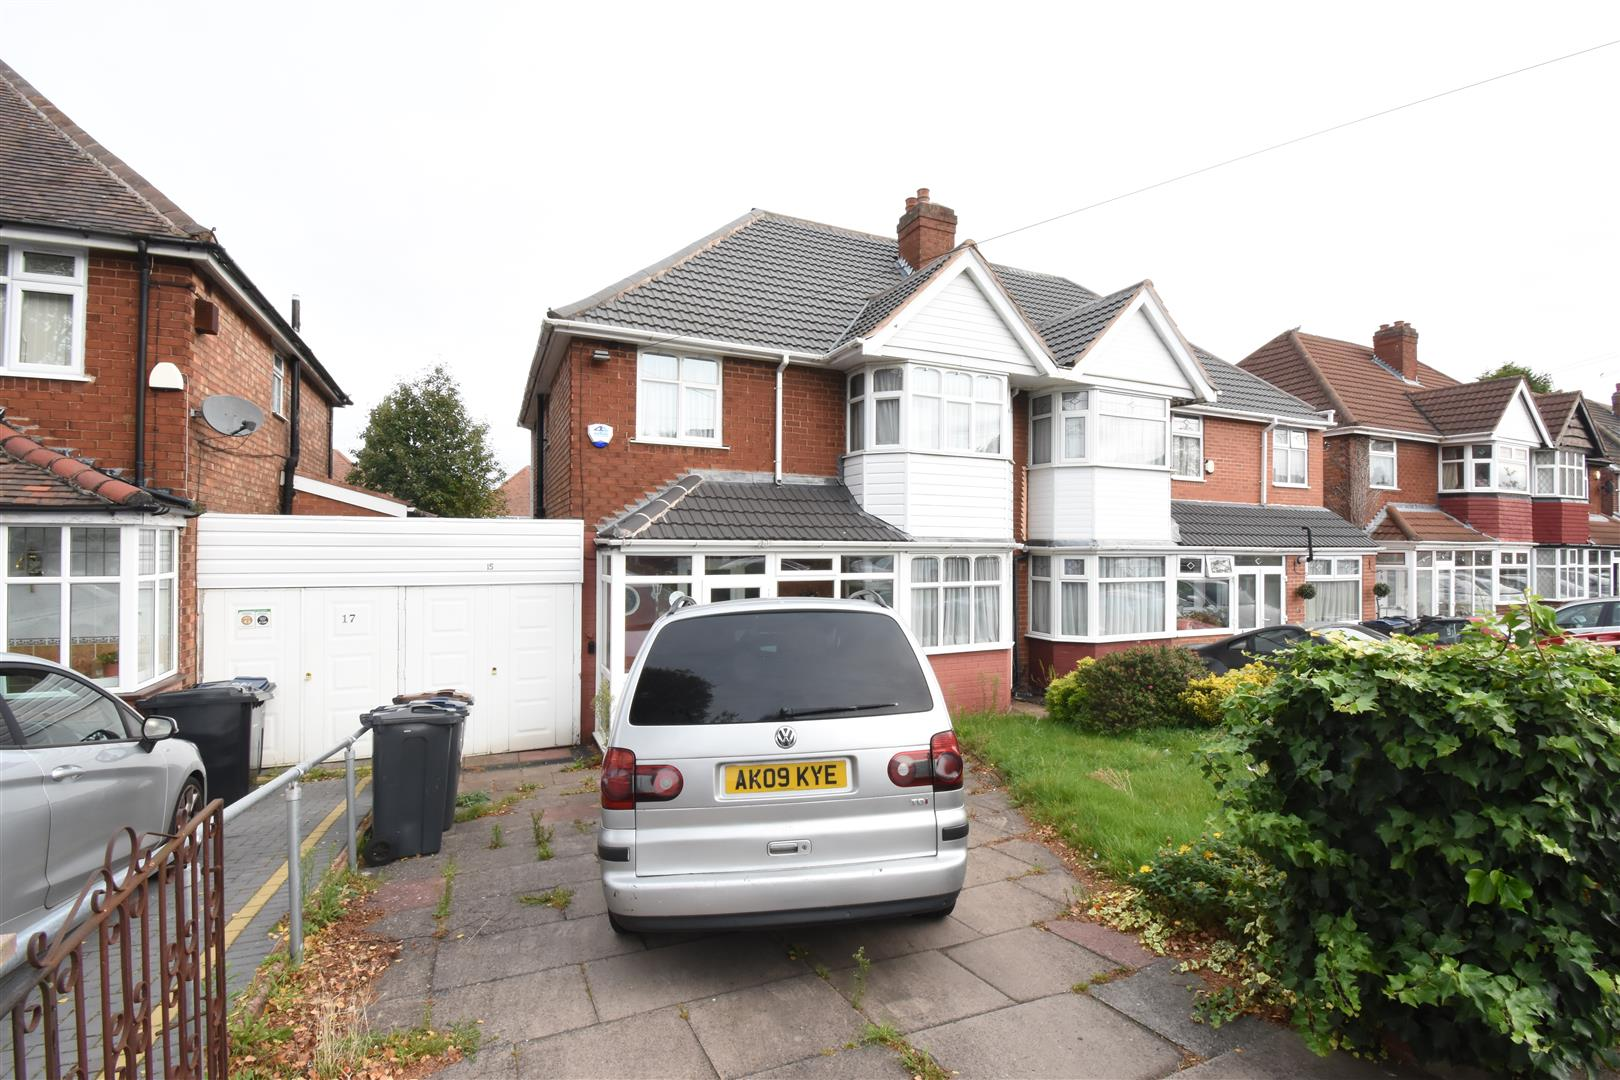 3 bed house for sale in Madison Avenue, Birmingham, B36